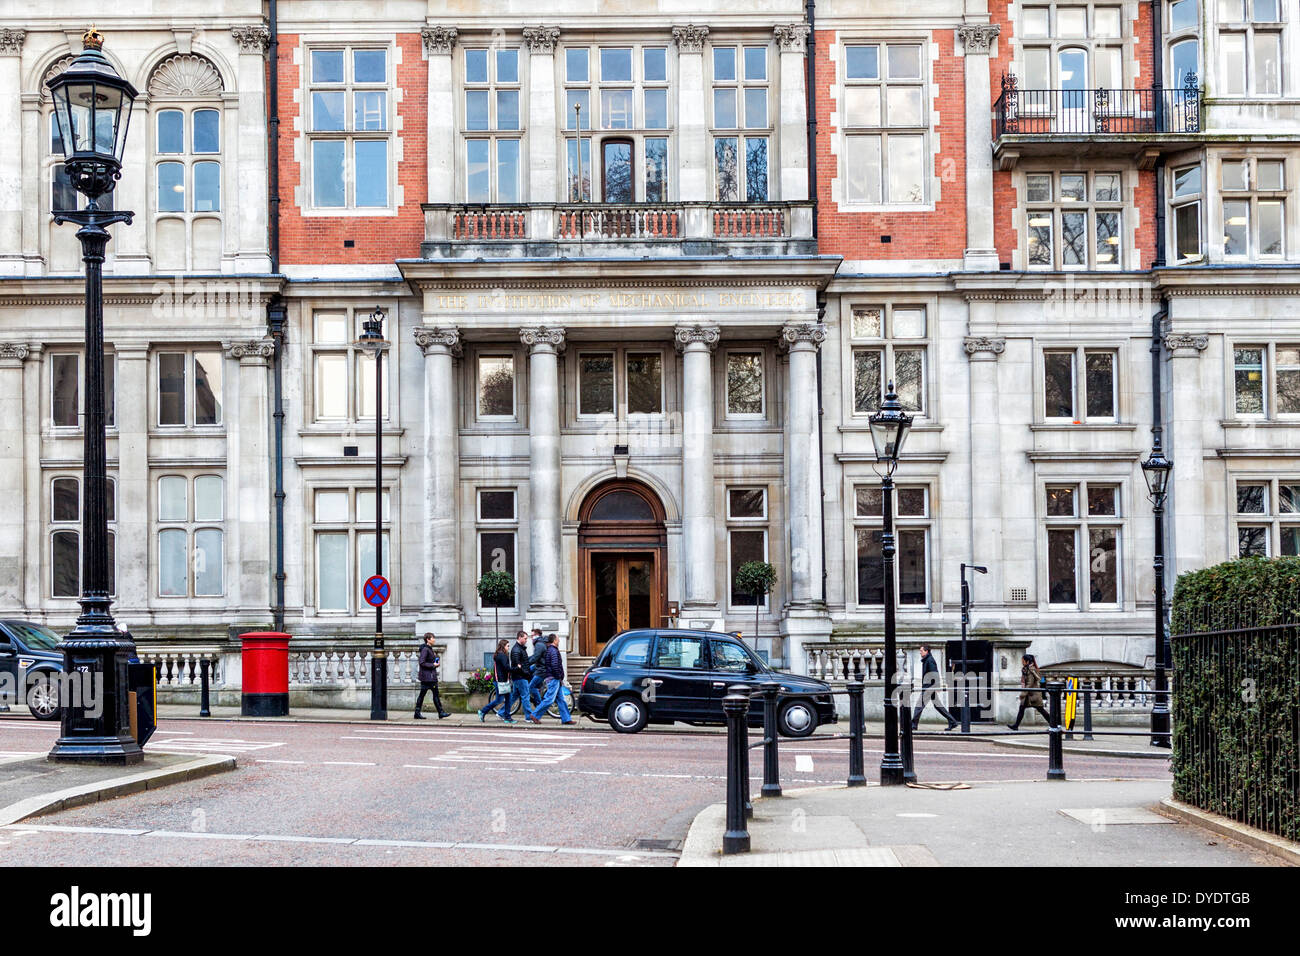 The Institution of Mechanical Engineers - Queen Anne style building in brick and Portland stone, Birdcage Walk, London, UK - Stock Image